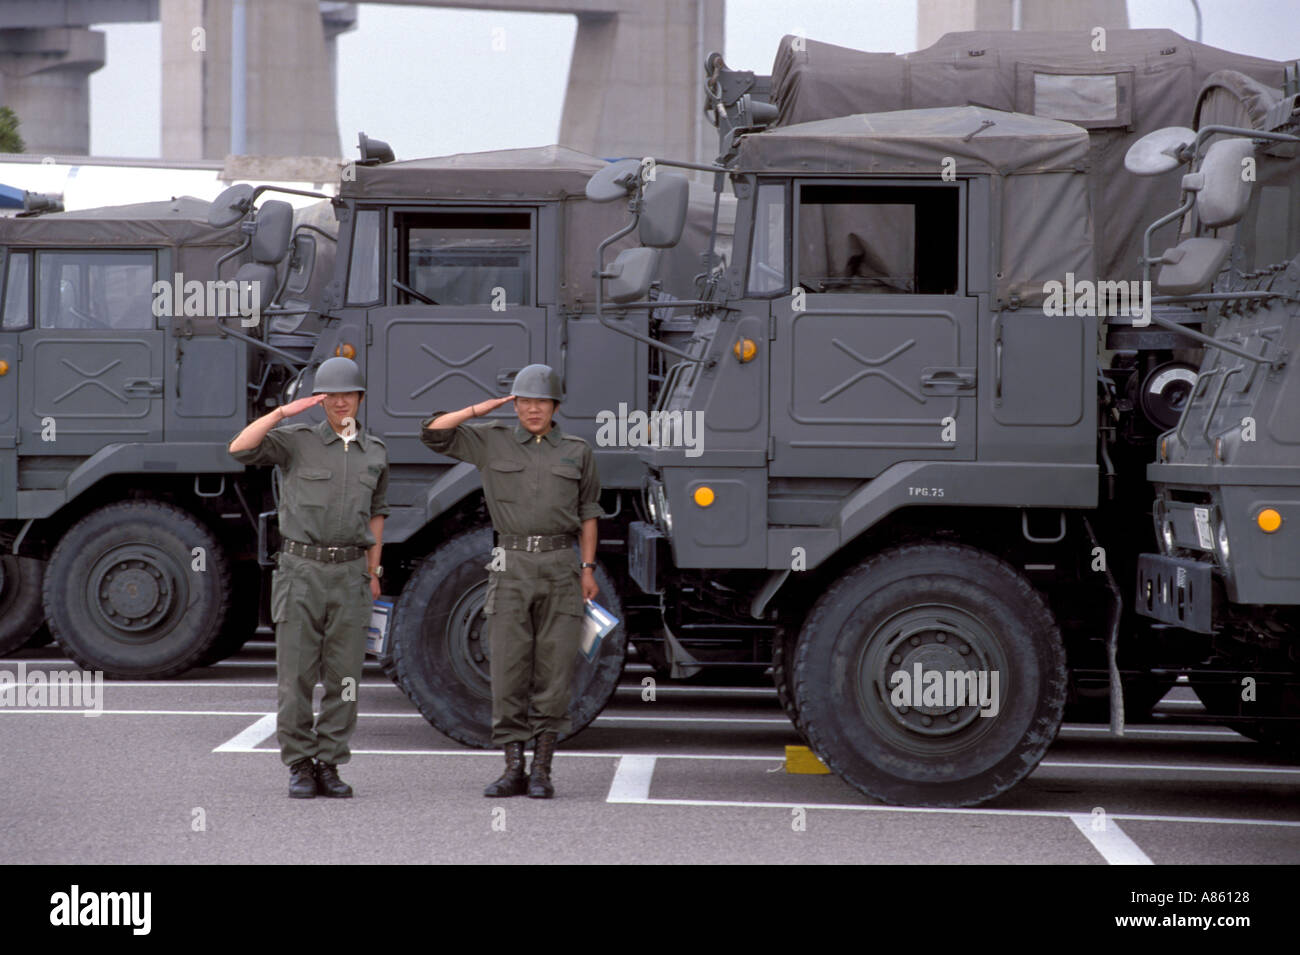 Two soldiers in uniform from Japan's national defense forces salute while standing beside their military vehicles - Stock Image